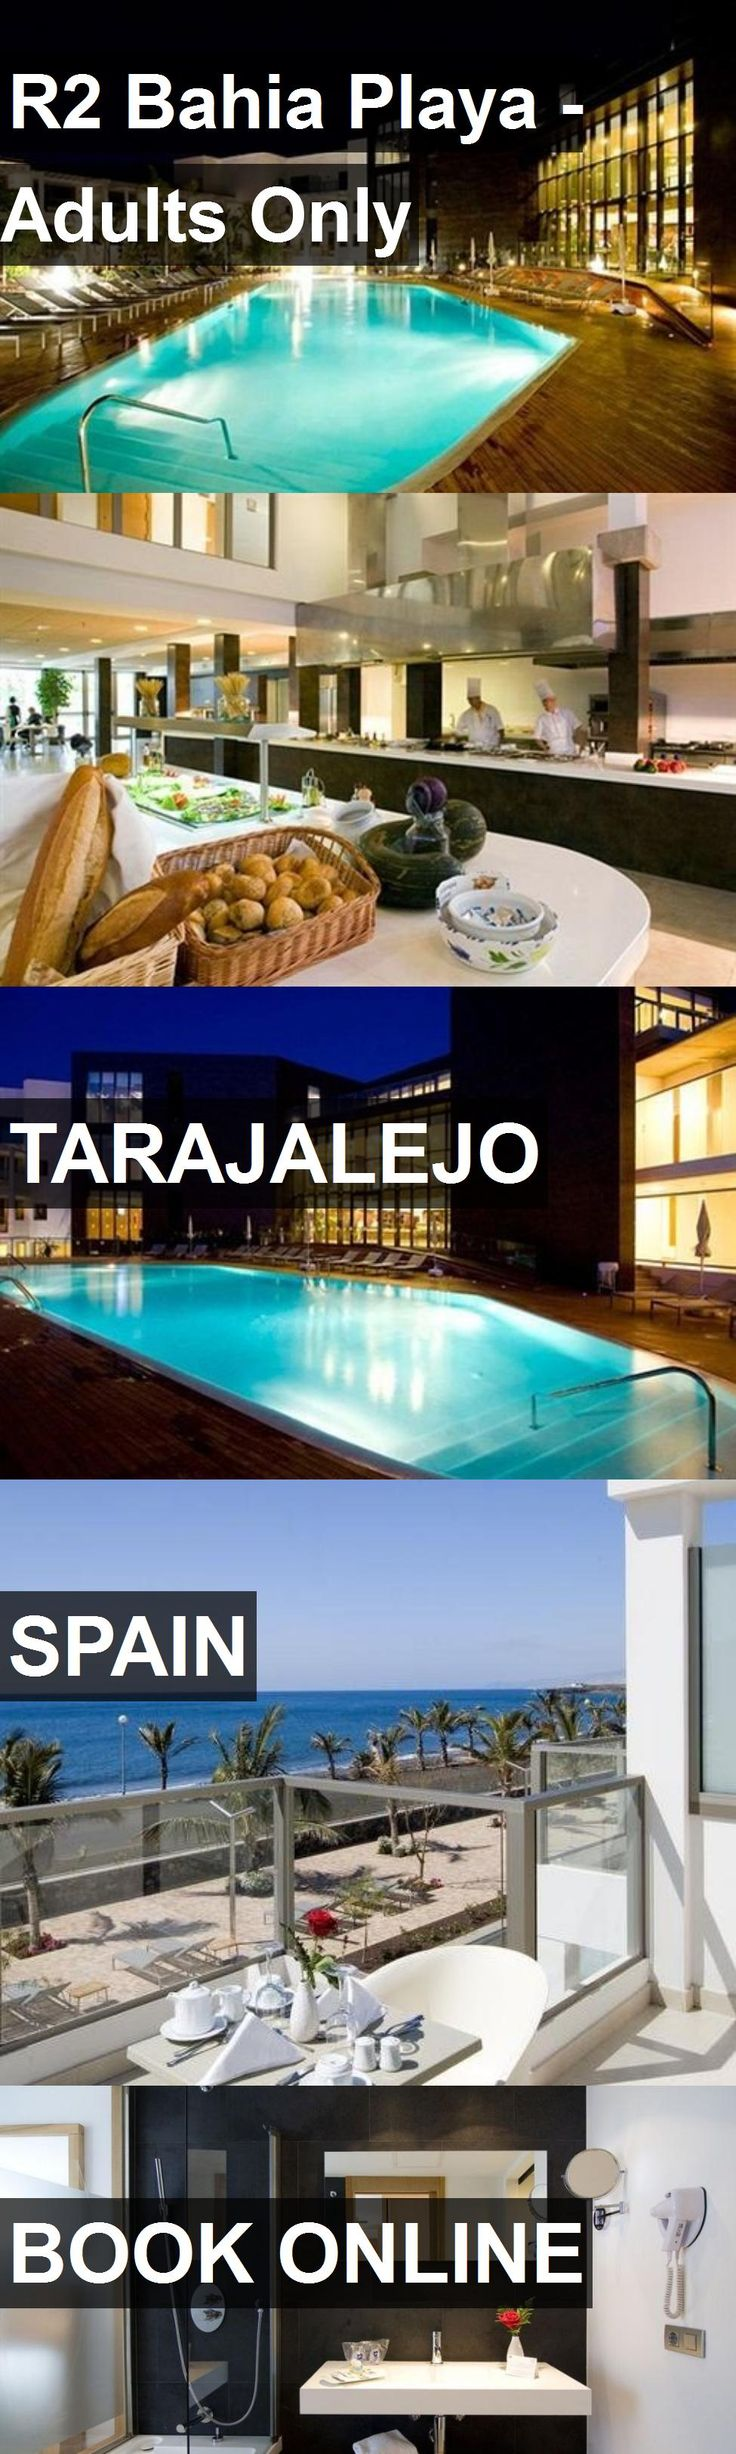 Hotel R2 Bahia Playa - Adults Only in Tarajalejo, Spain. For more information, photos, reviews and best prices please follow the link. #Spain #Tarajalejo #R2BahiaPlaya-AdultsOnly #hotel #travel #vacation